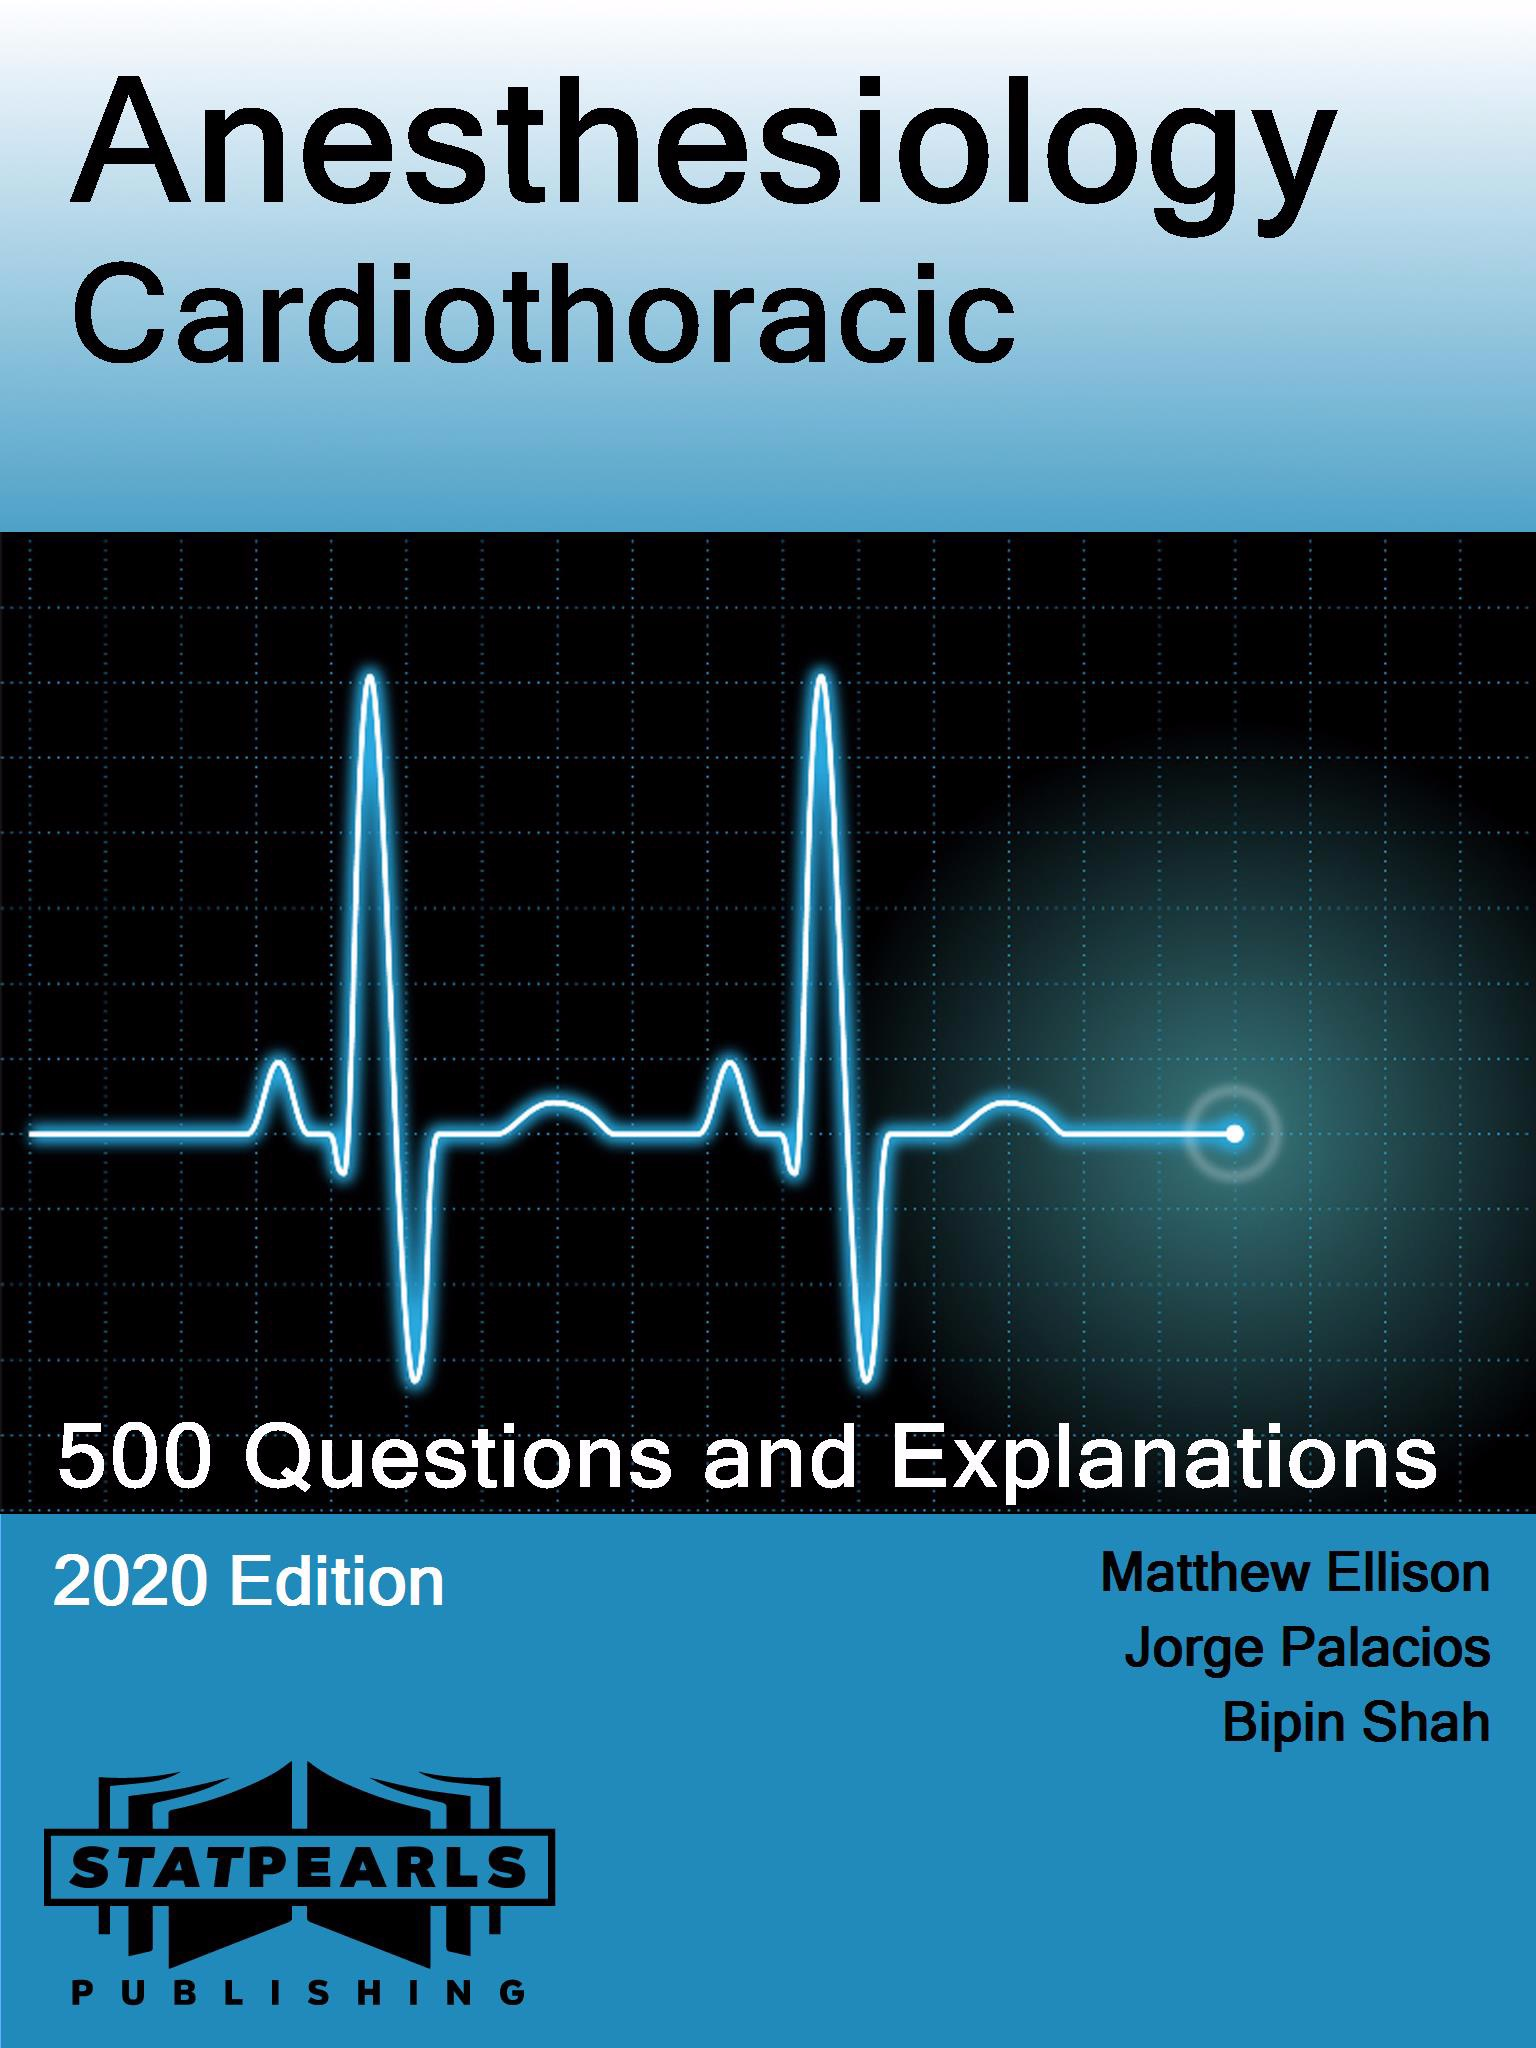 Anesthesiology Cardiothoracic